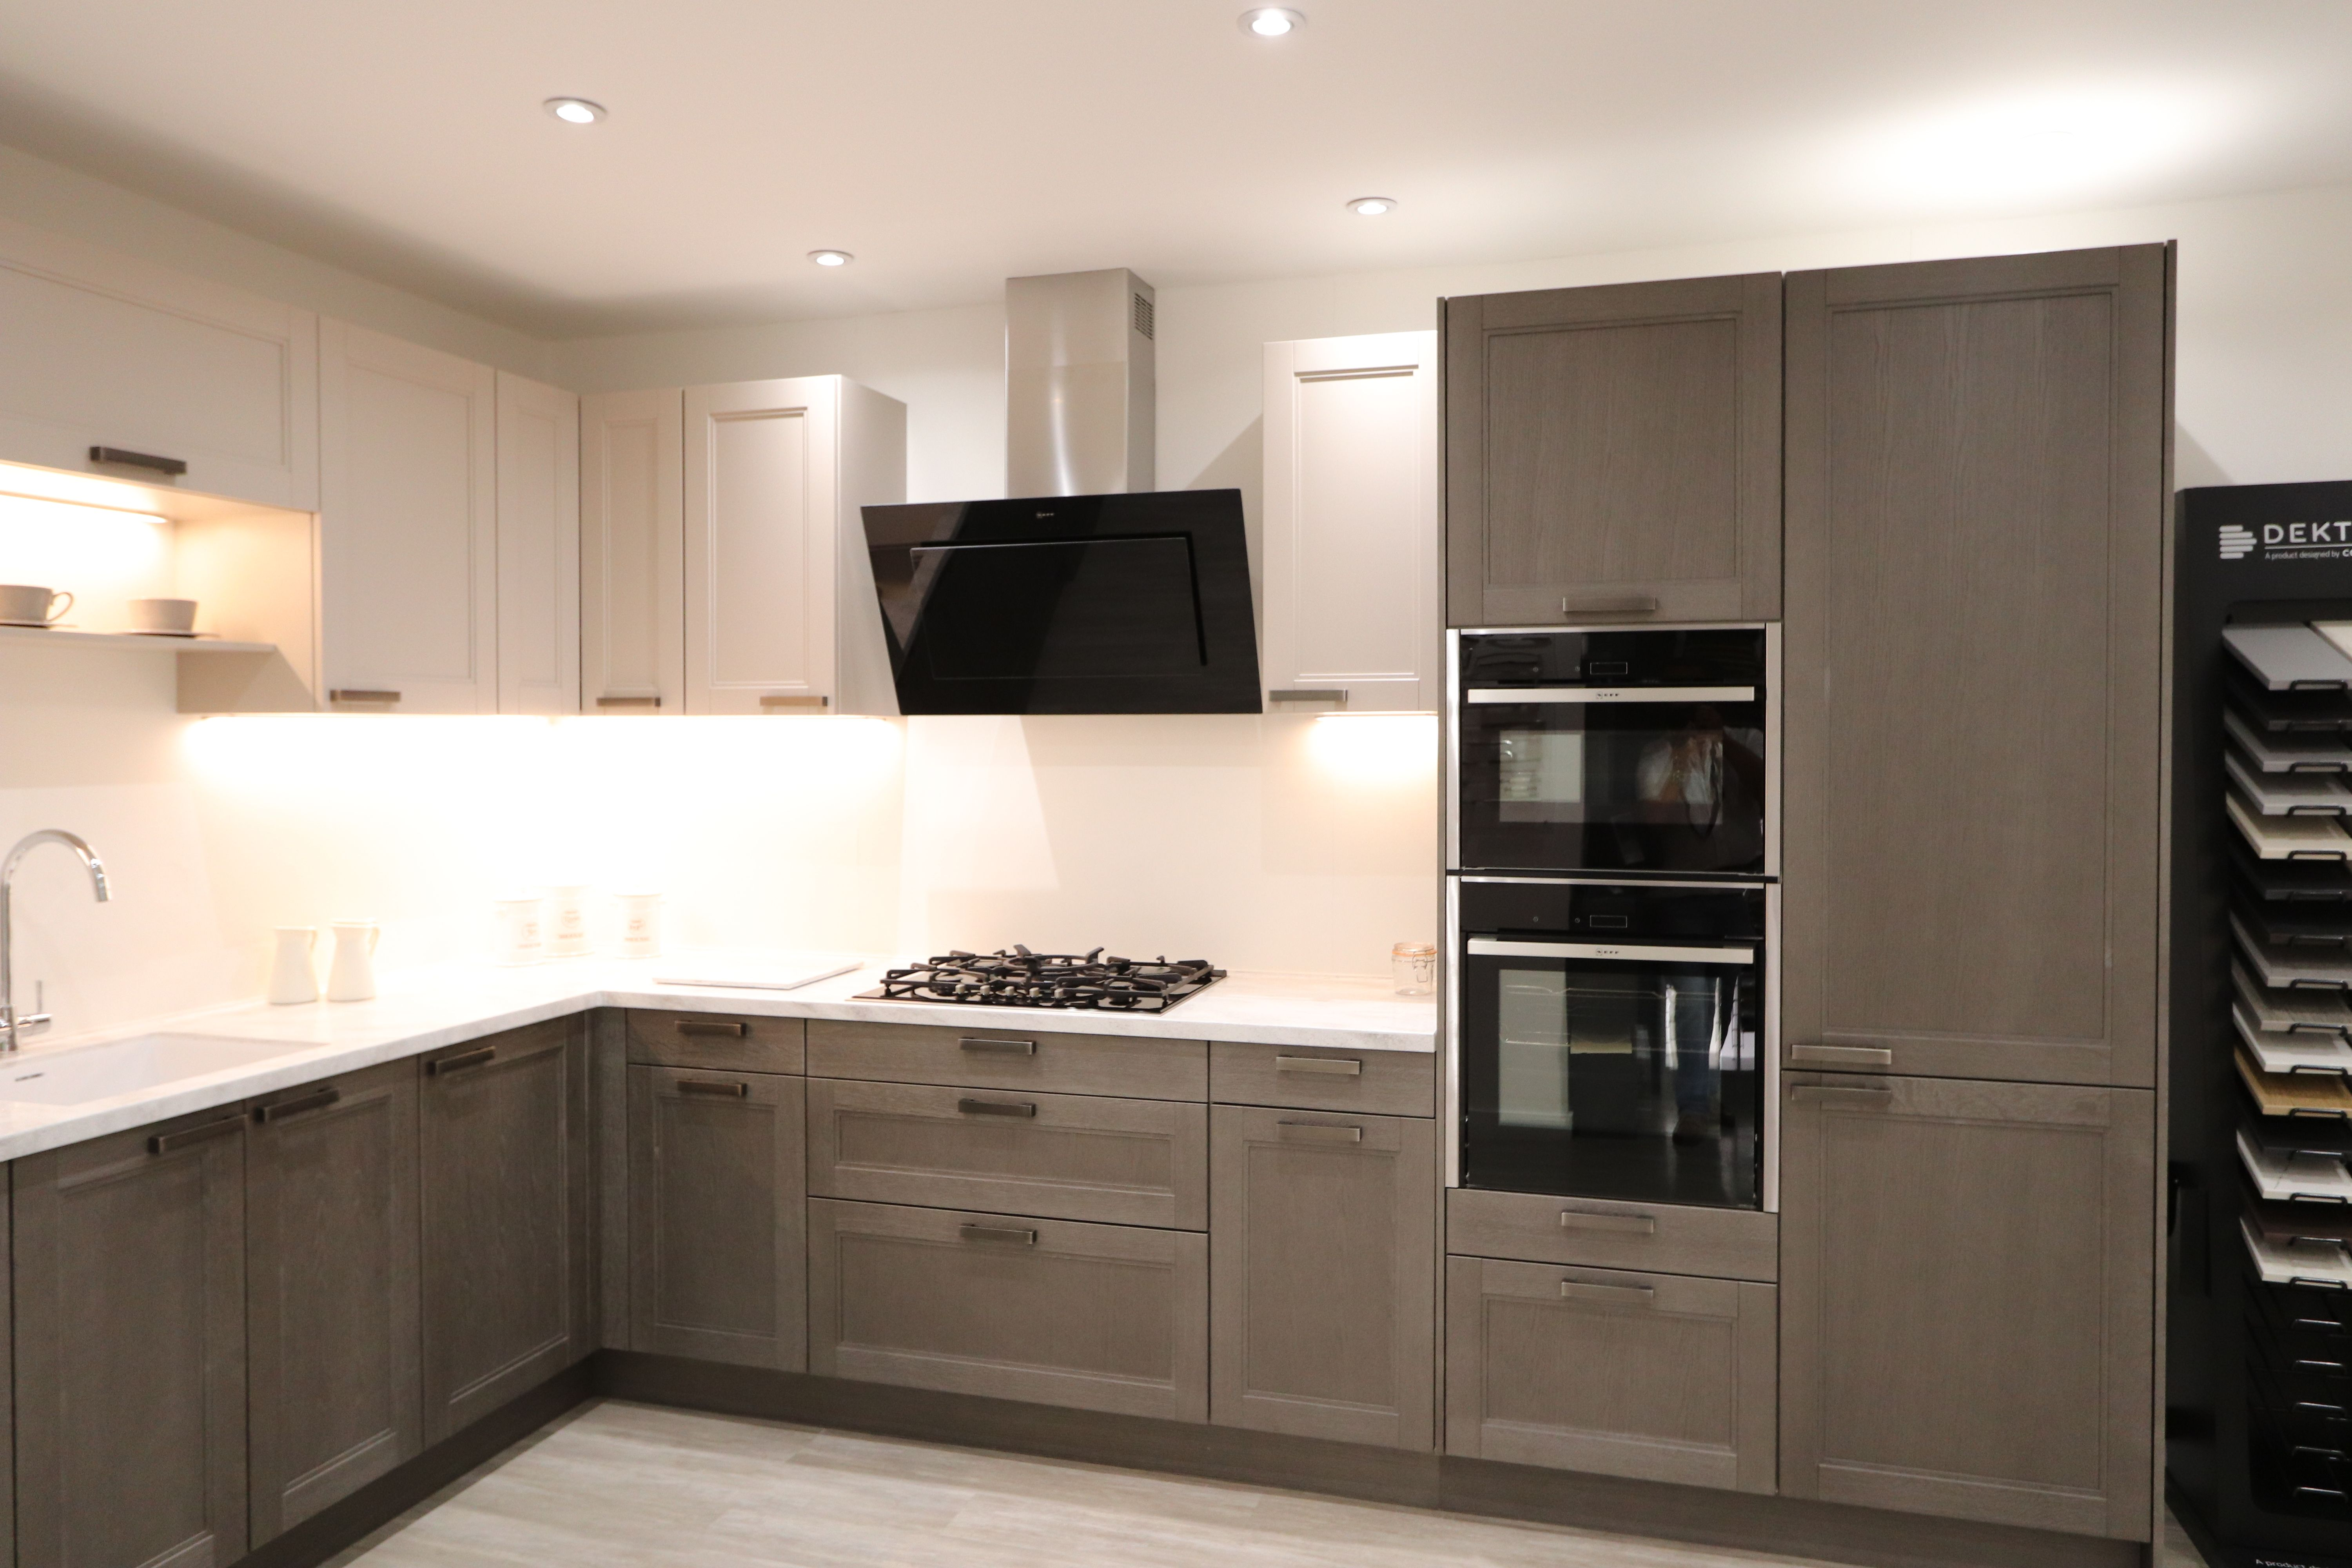 Unique London kitchens created by our talented team of